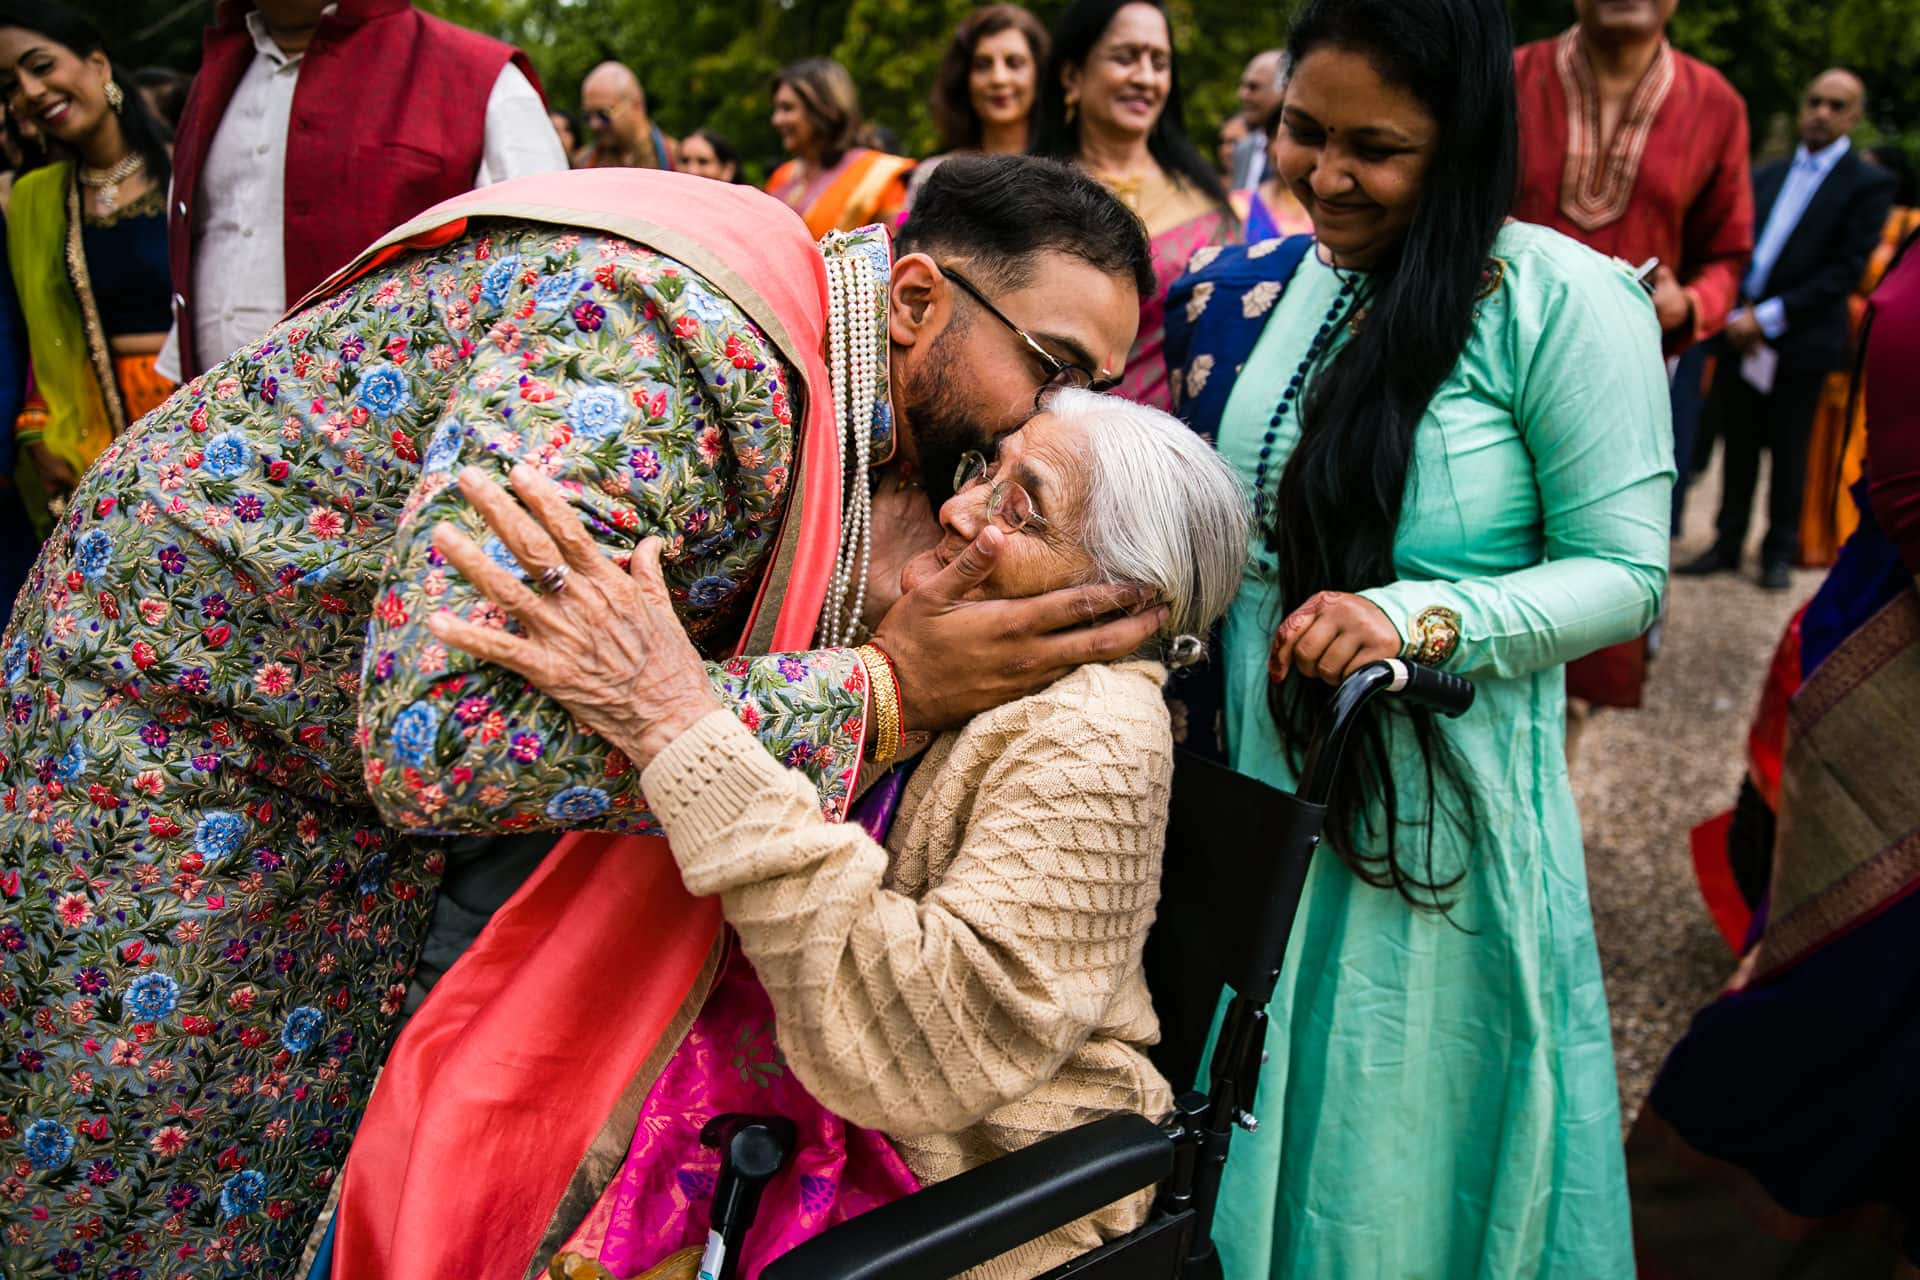 Groom kissing Gran on cheek